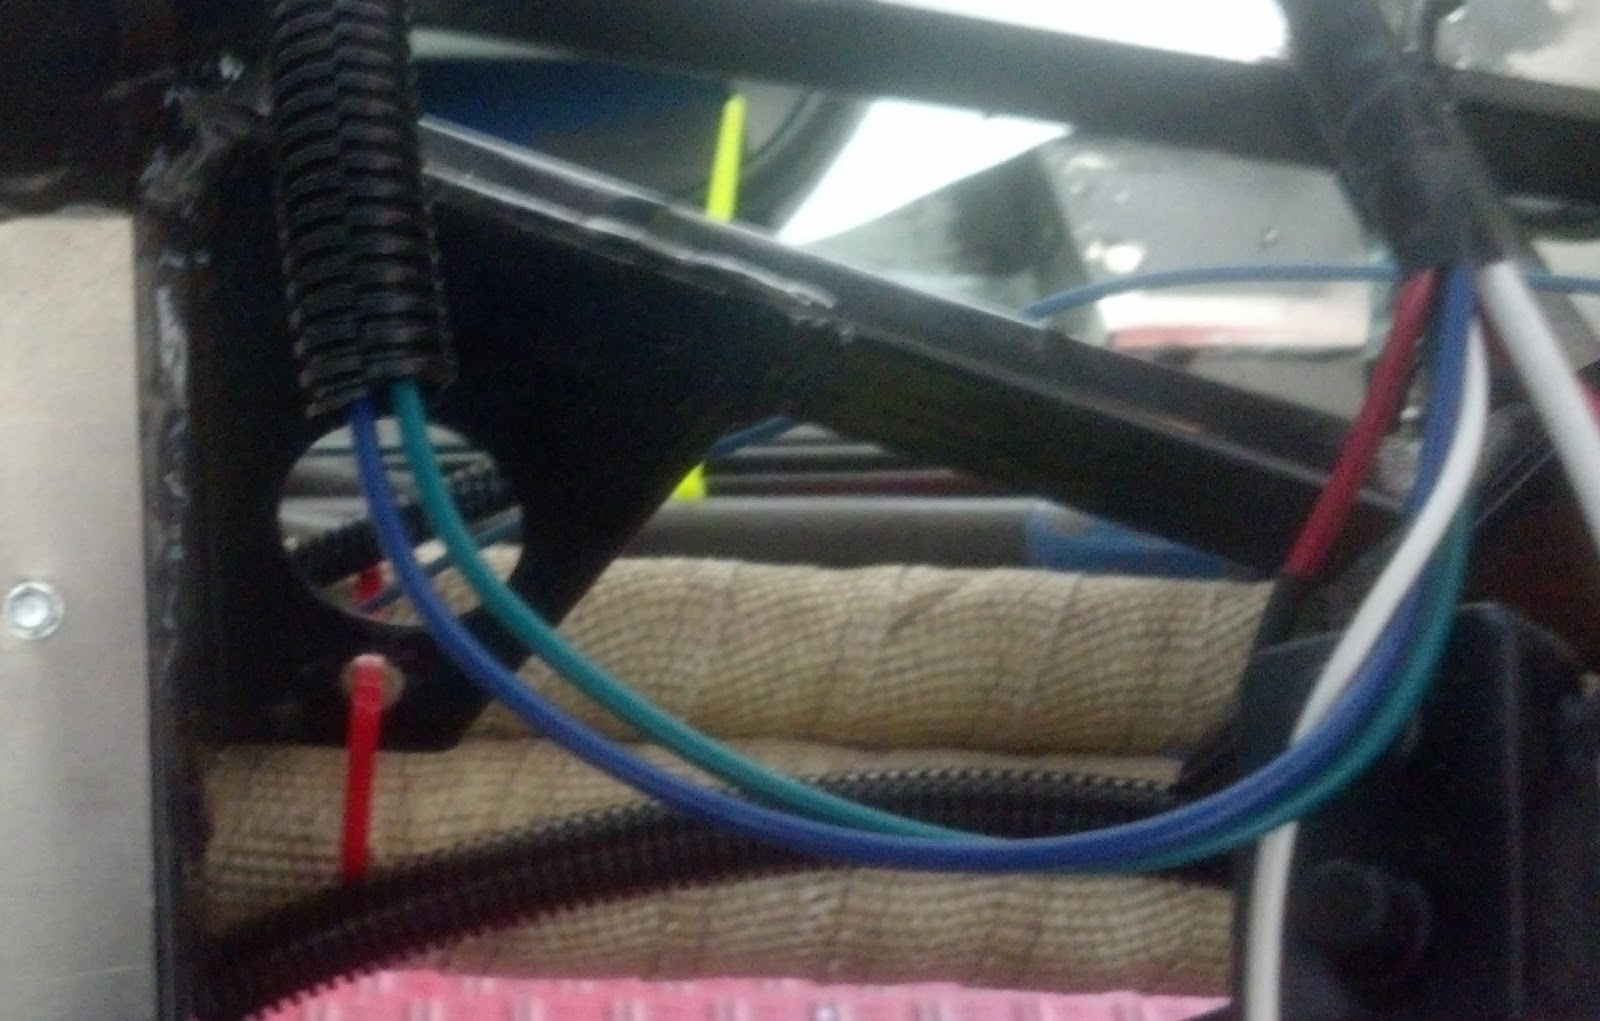 Super Car Build Install Invironment Circuit 1 3 Vintage Air Ac Wiring Diagram These Wires Are Part Of The Harness Blue Goes To Compressor And Green Runs Heater Control Valve